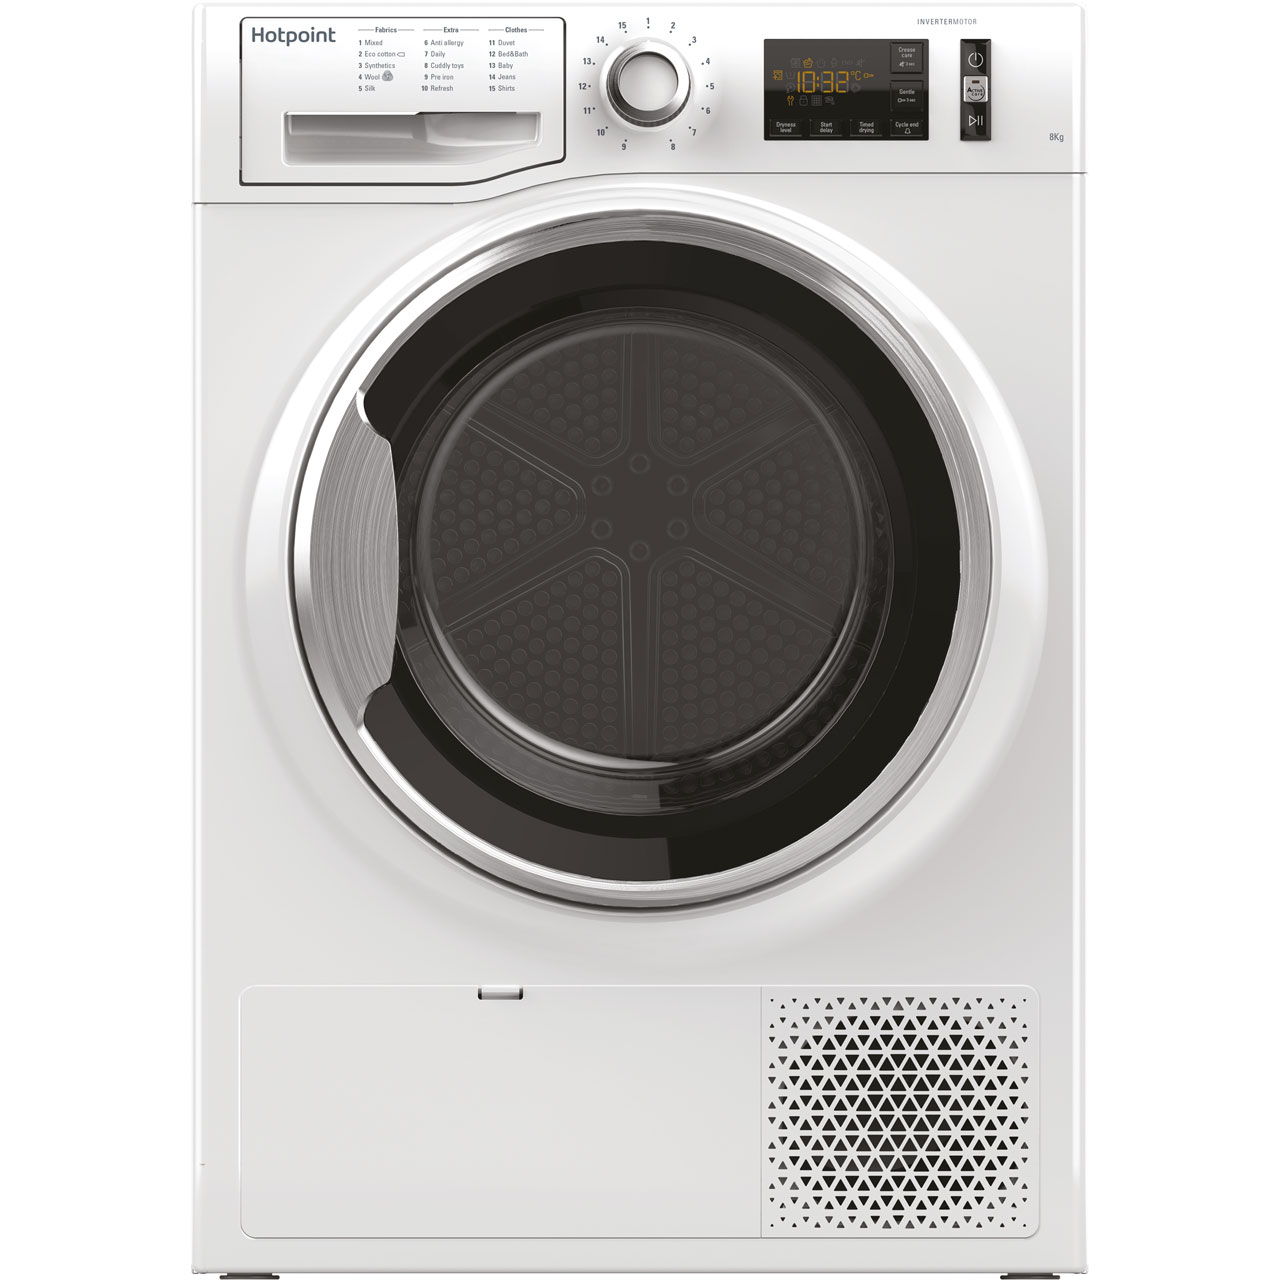 Hotpoint Active Care NTM1182XBUK 8Kg Heat Pump Tumble Dryer review